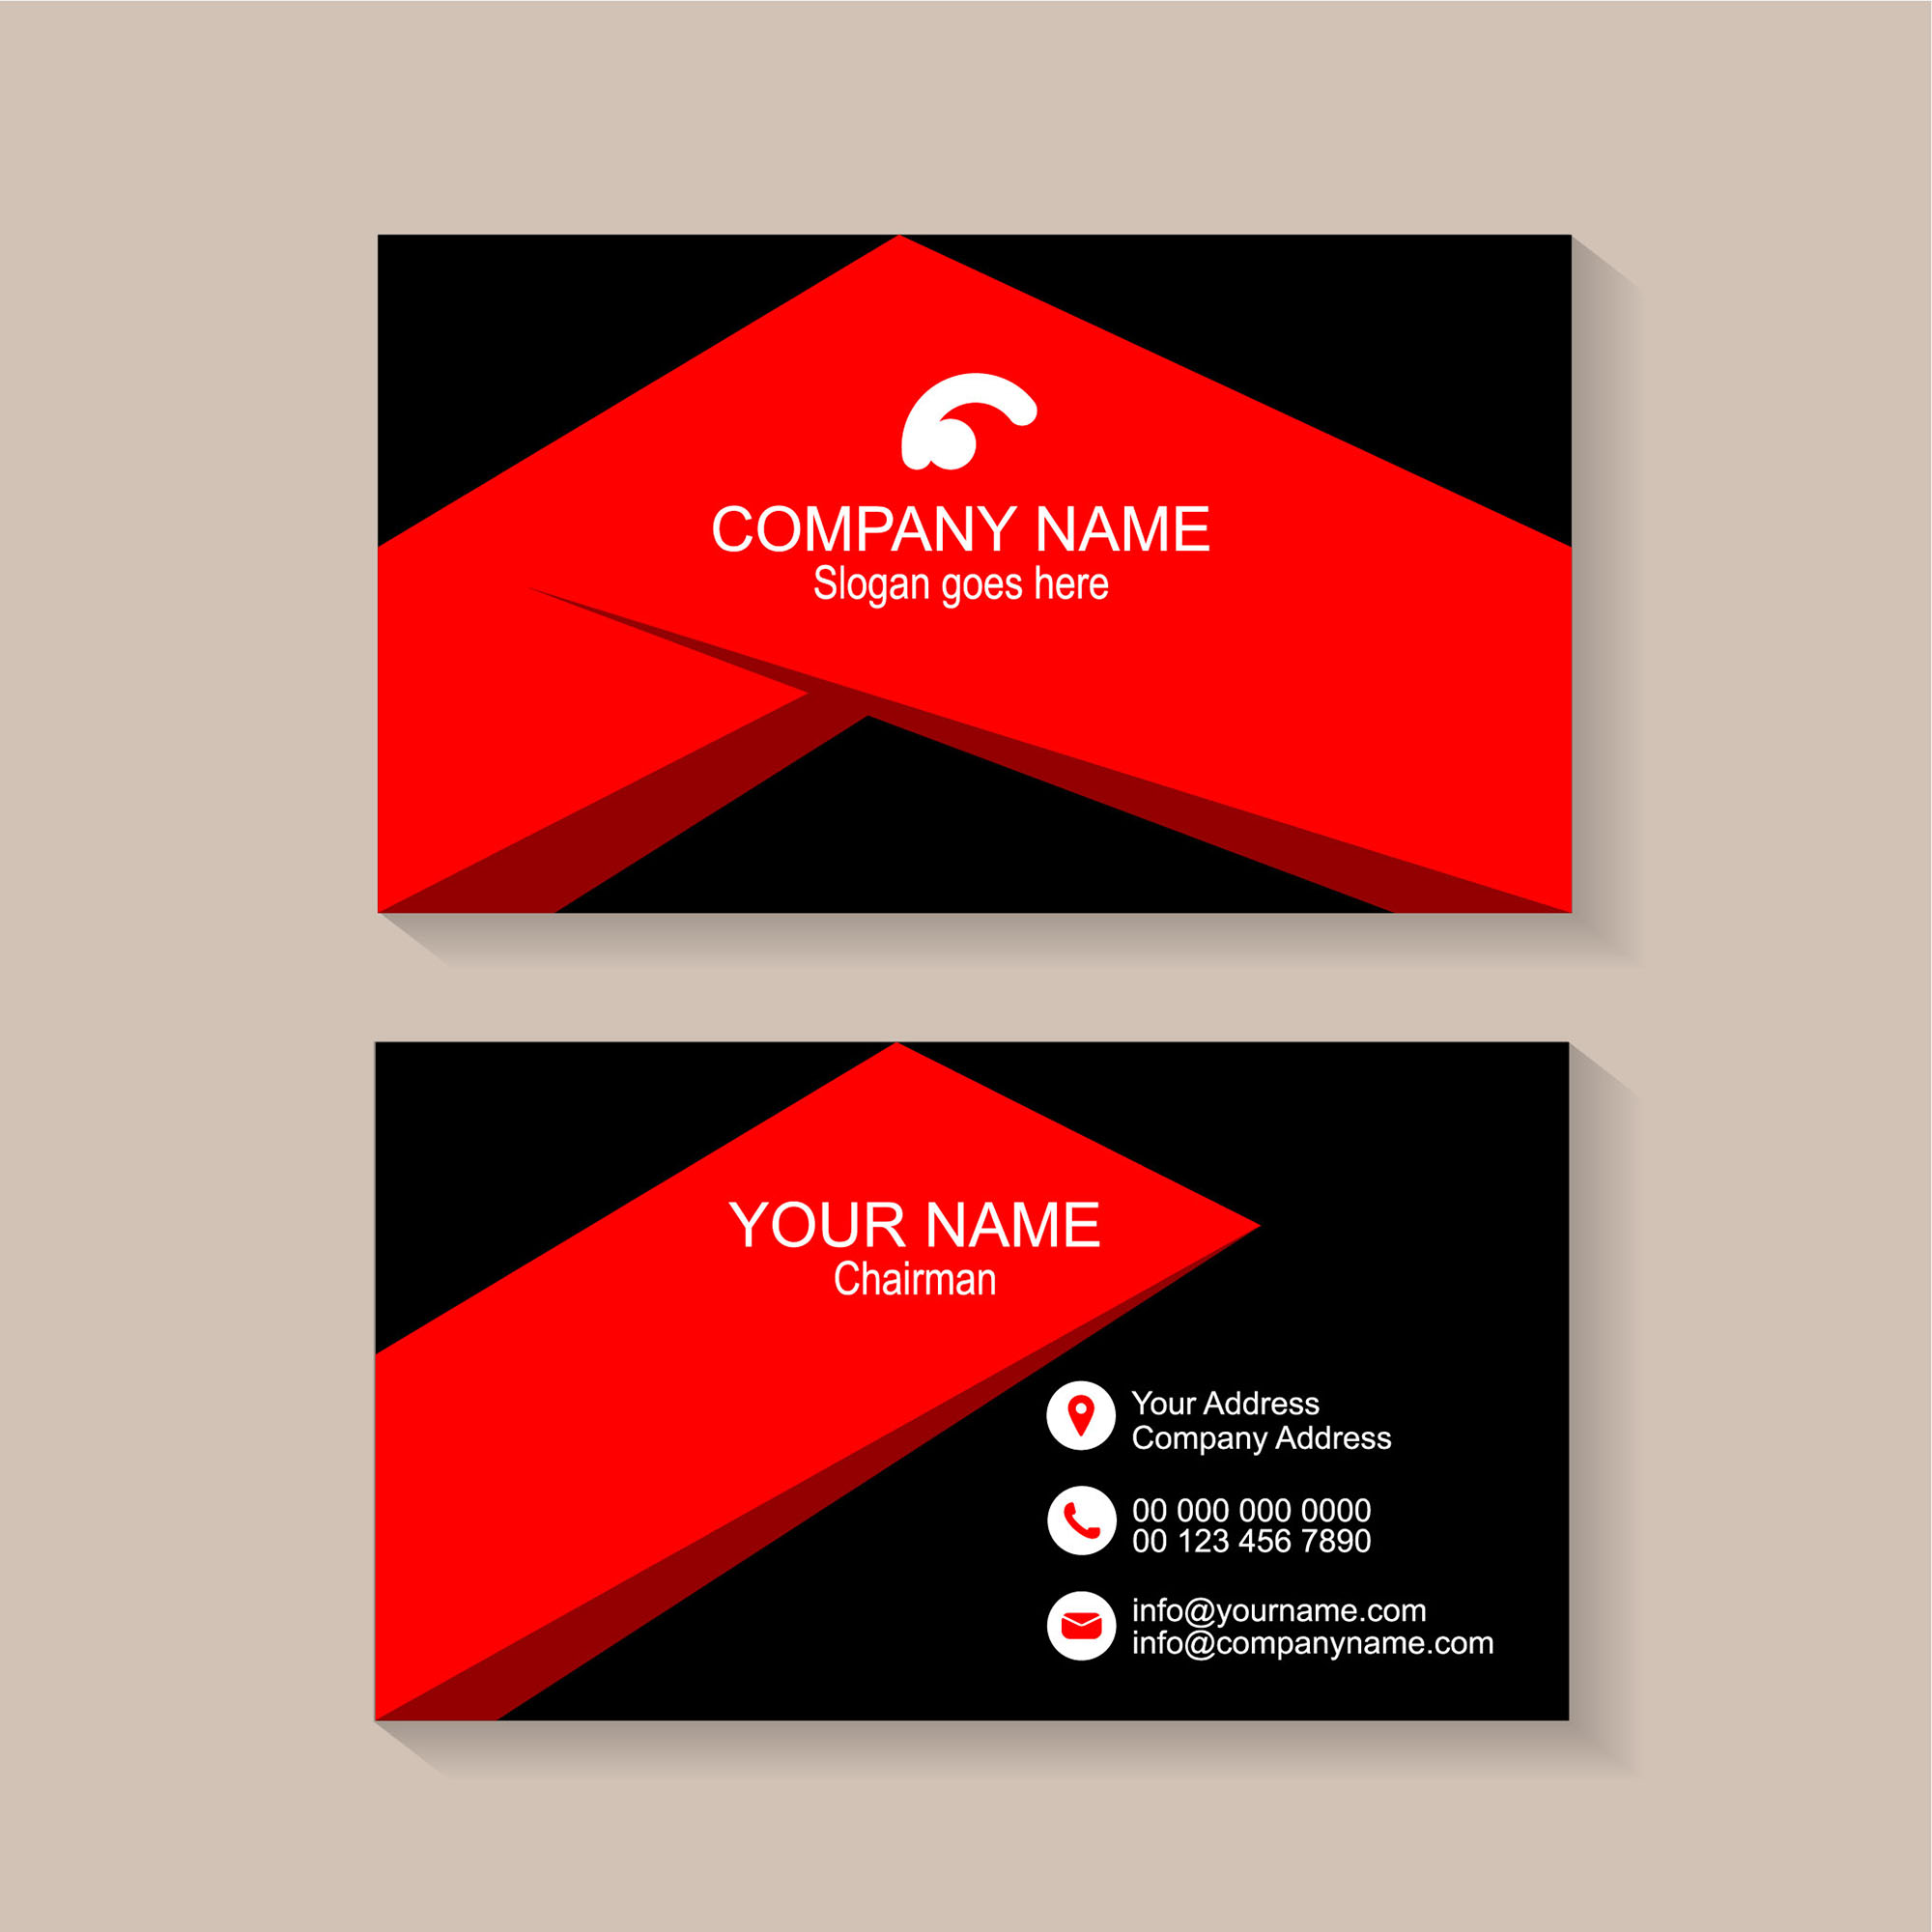 Business card template design free download wisxi business card business cards business card design business card template design templates colourmoves